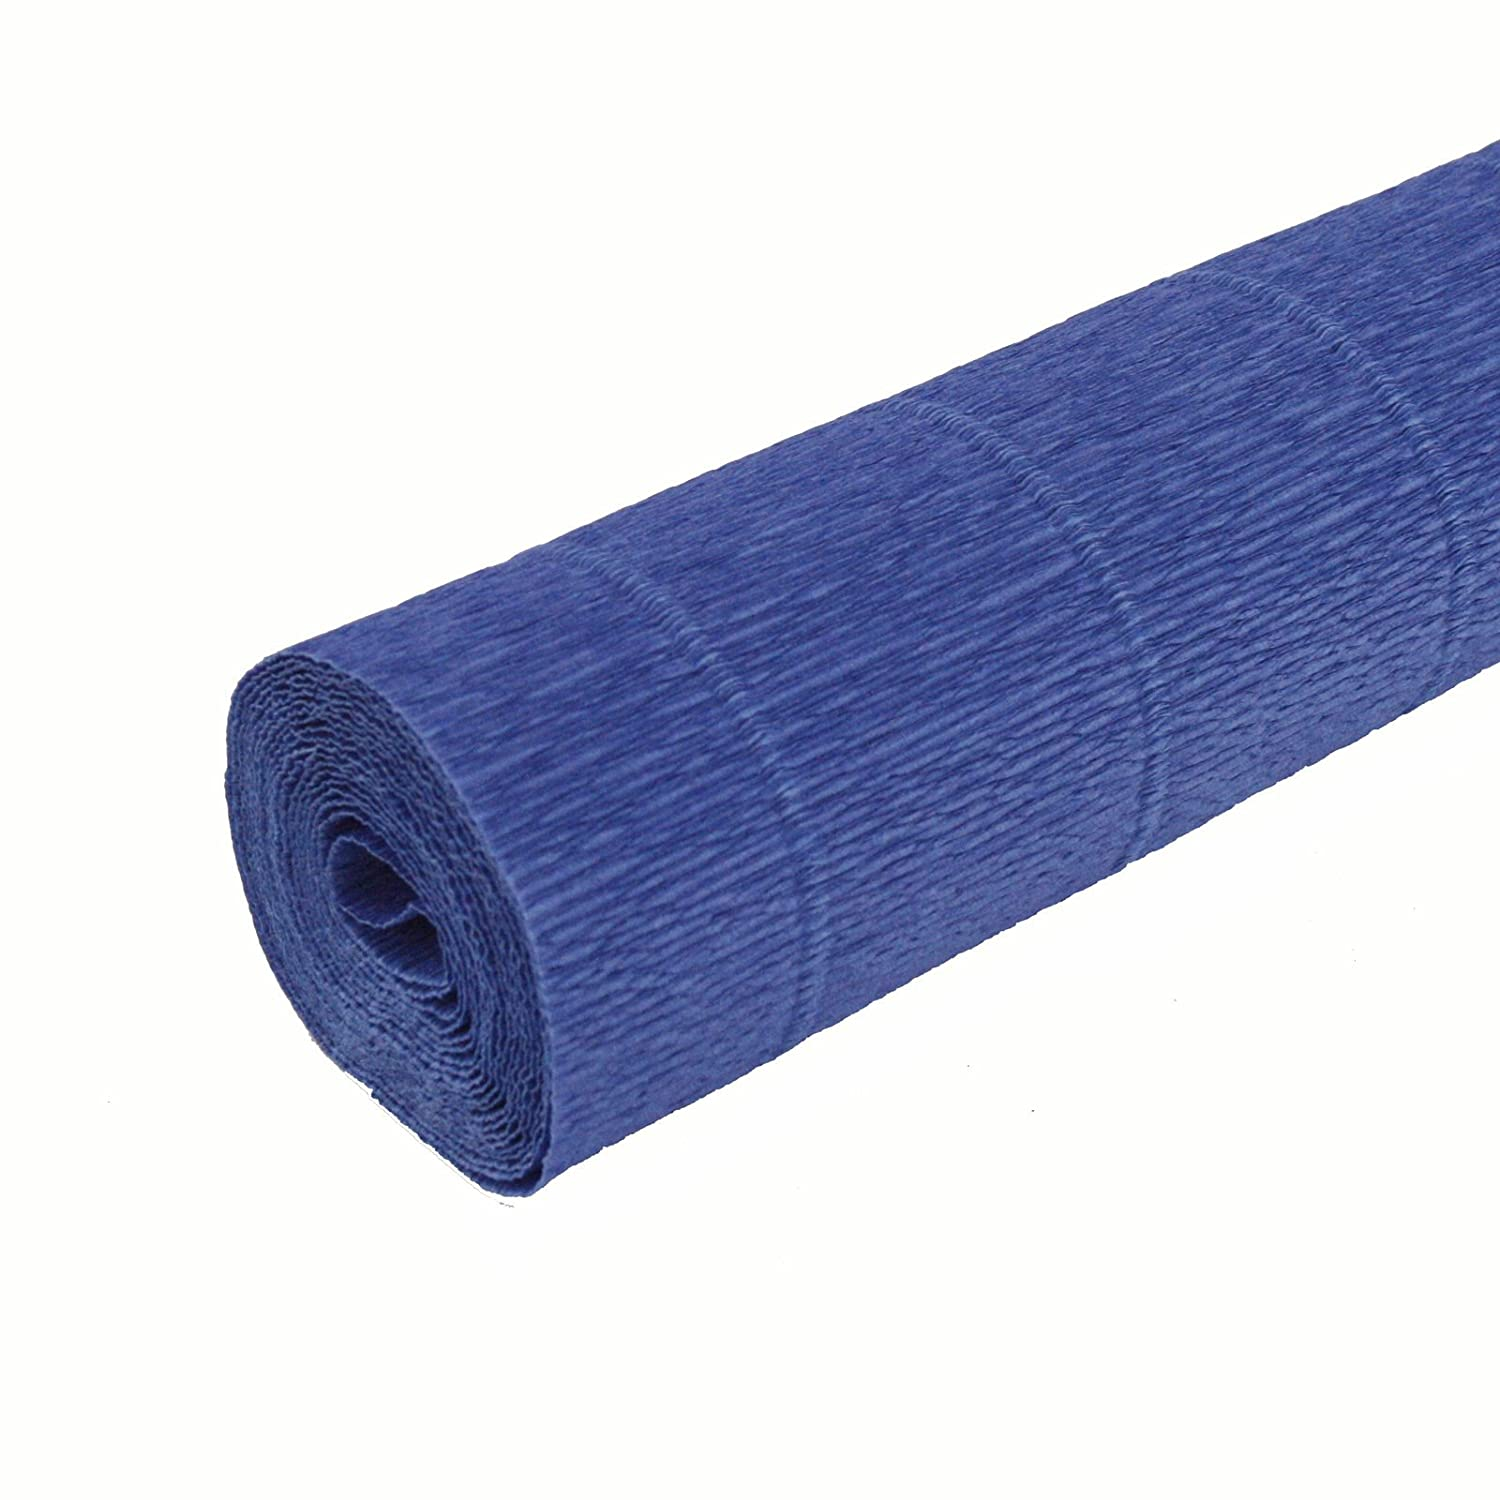 Top quality Italian paper craft FloristryWarehouse Purple 593 Crepe paper roll 20 inches wide x 8ft long